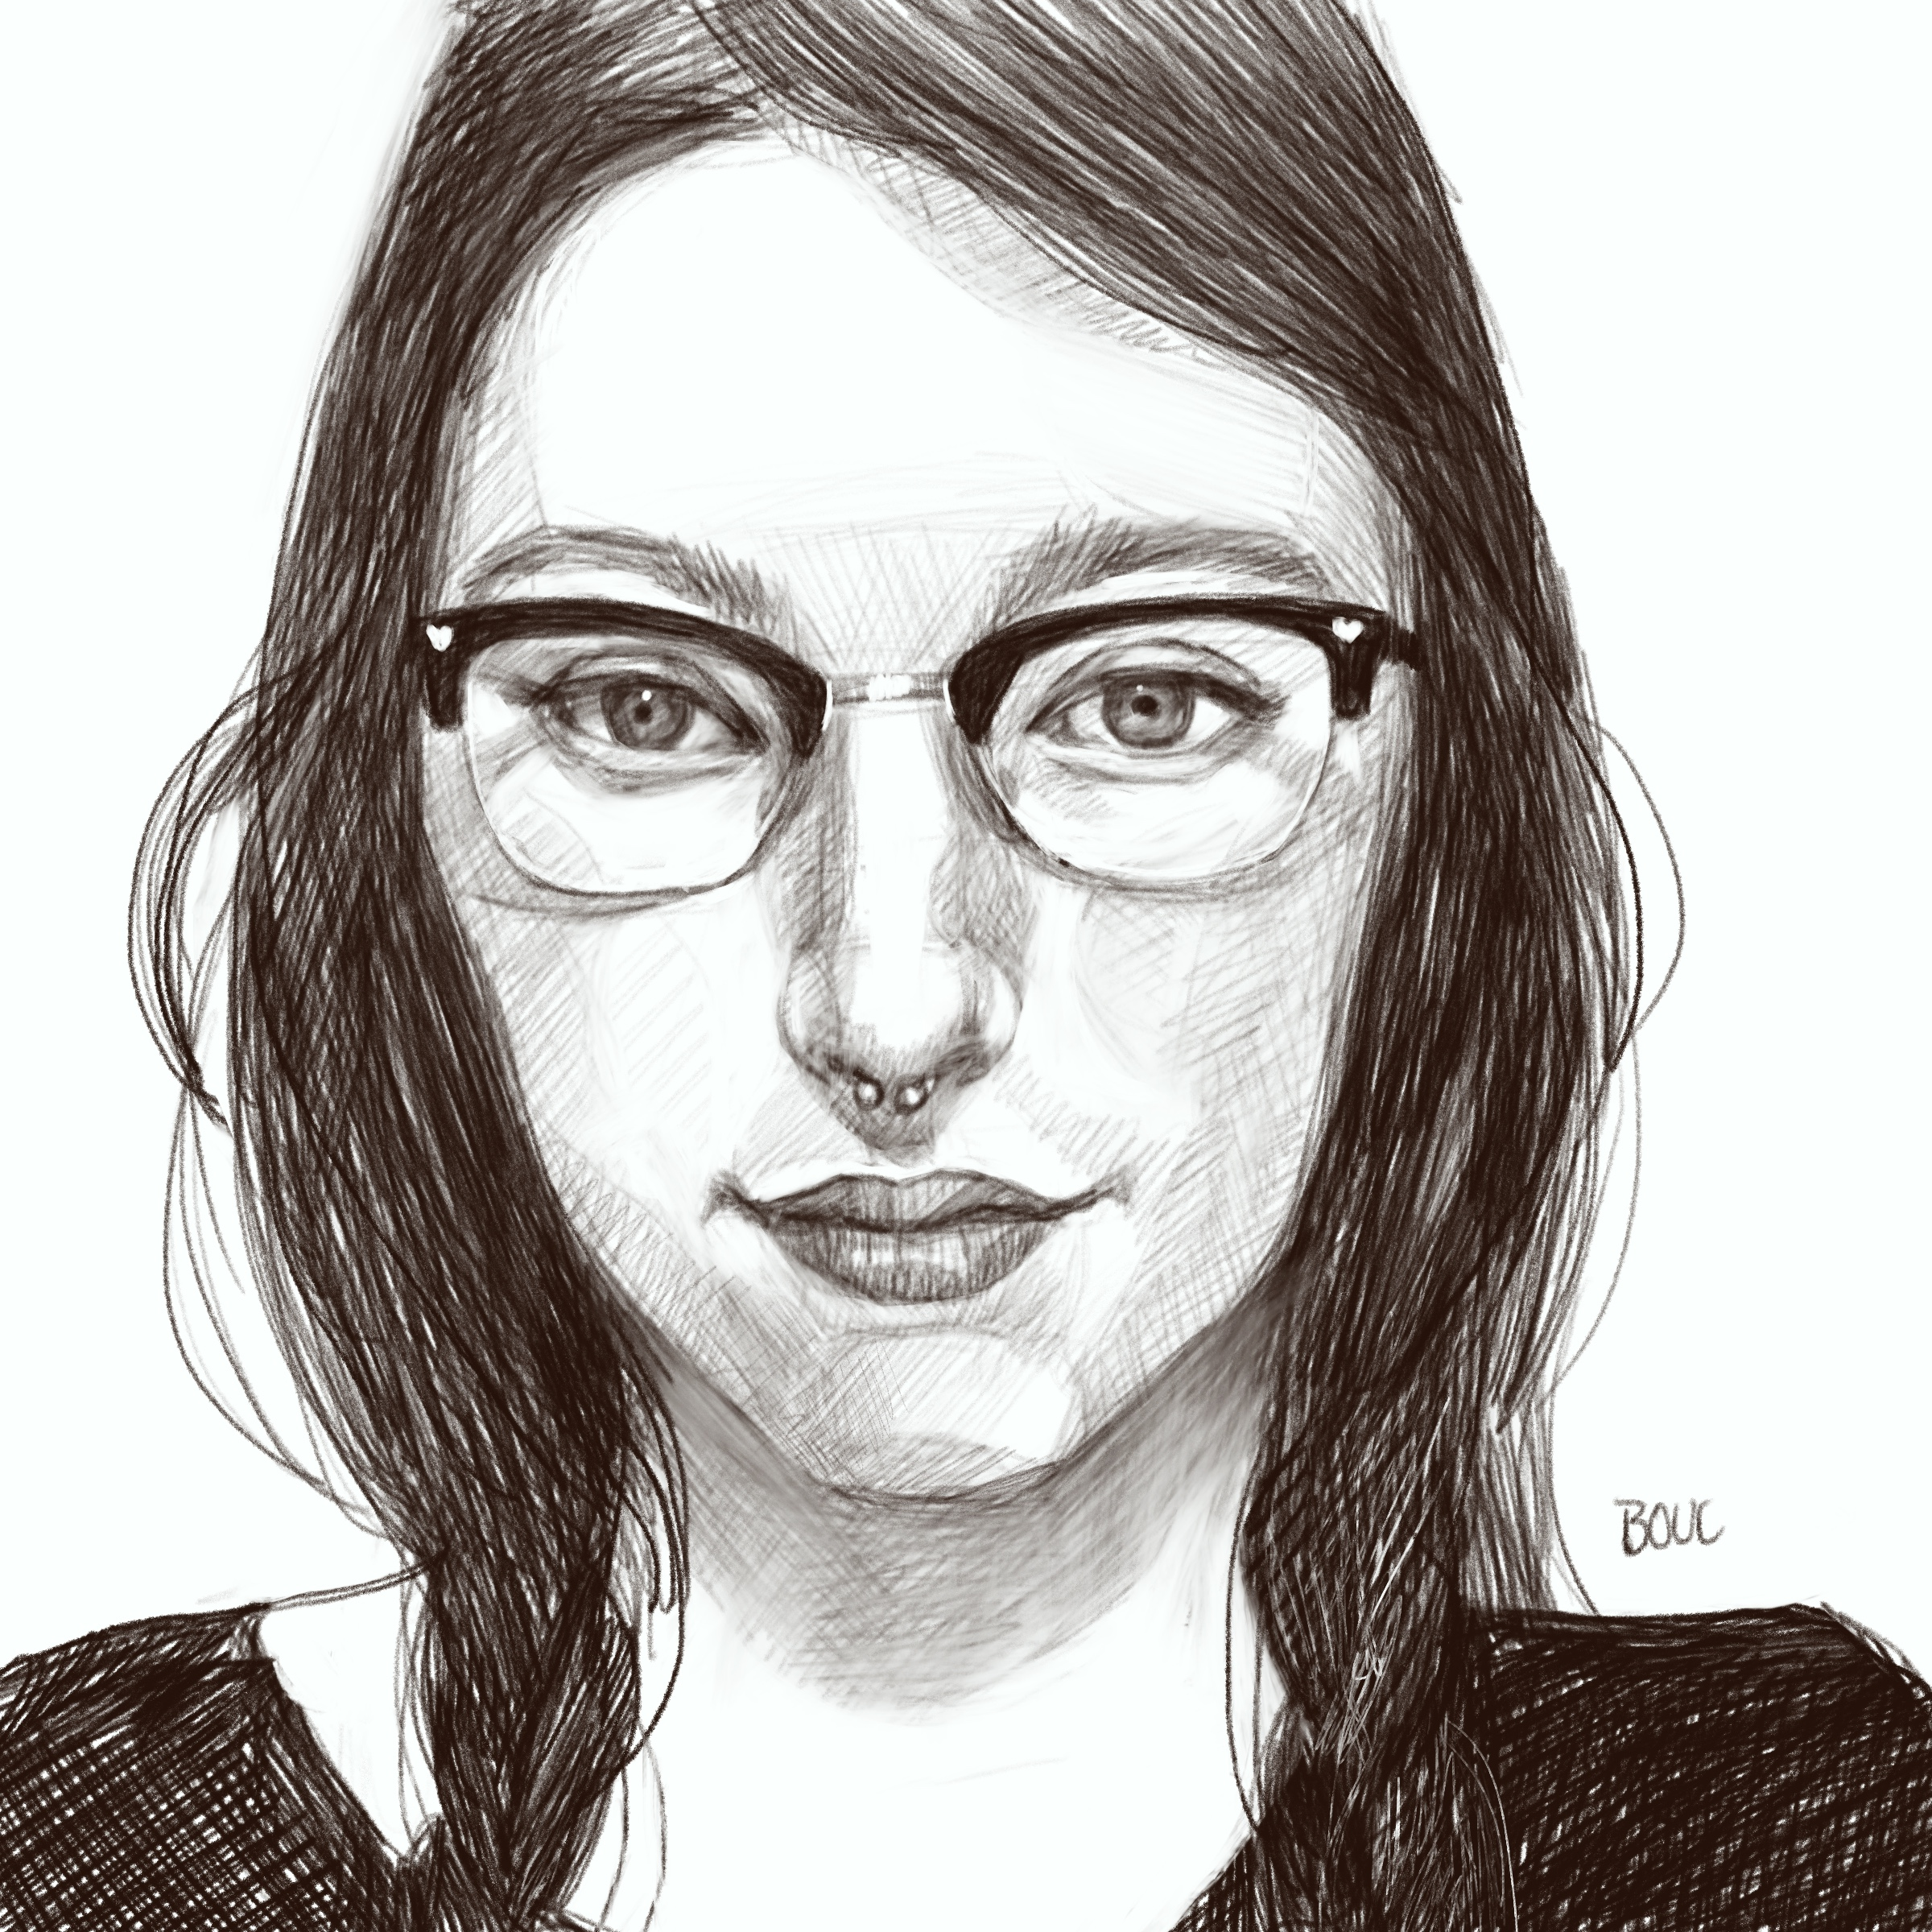 Sketch of artist Makenna Snyder from her photo on Sktchy app in Procreate